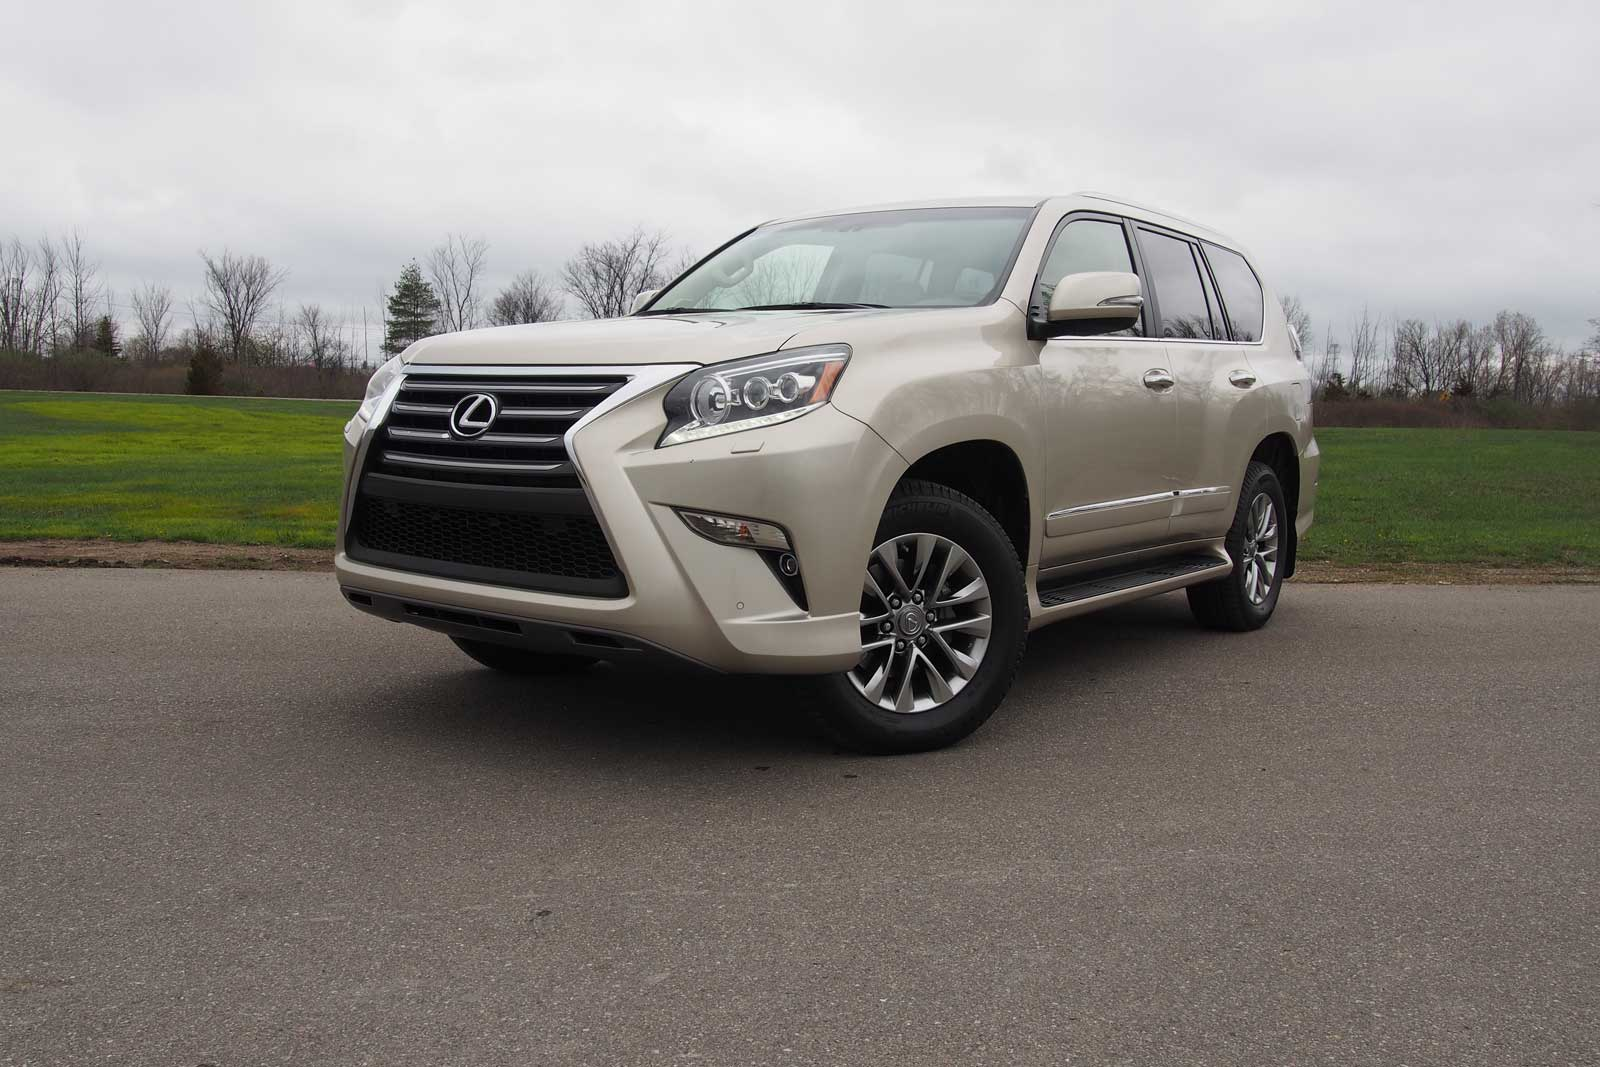 2017 lexus gx 460 price photos reviews types cars. Black Bedroom Furniture Sets. Home Design Ideas